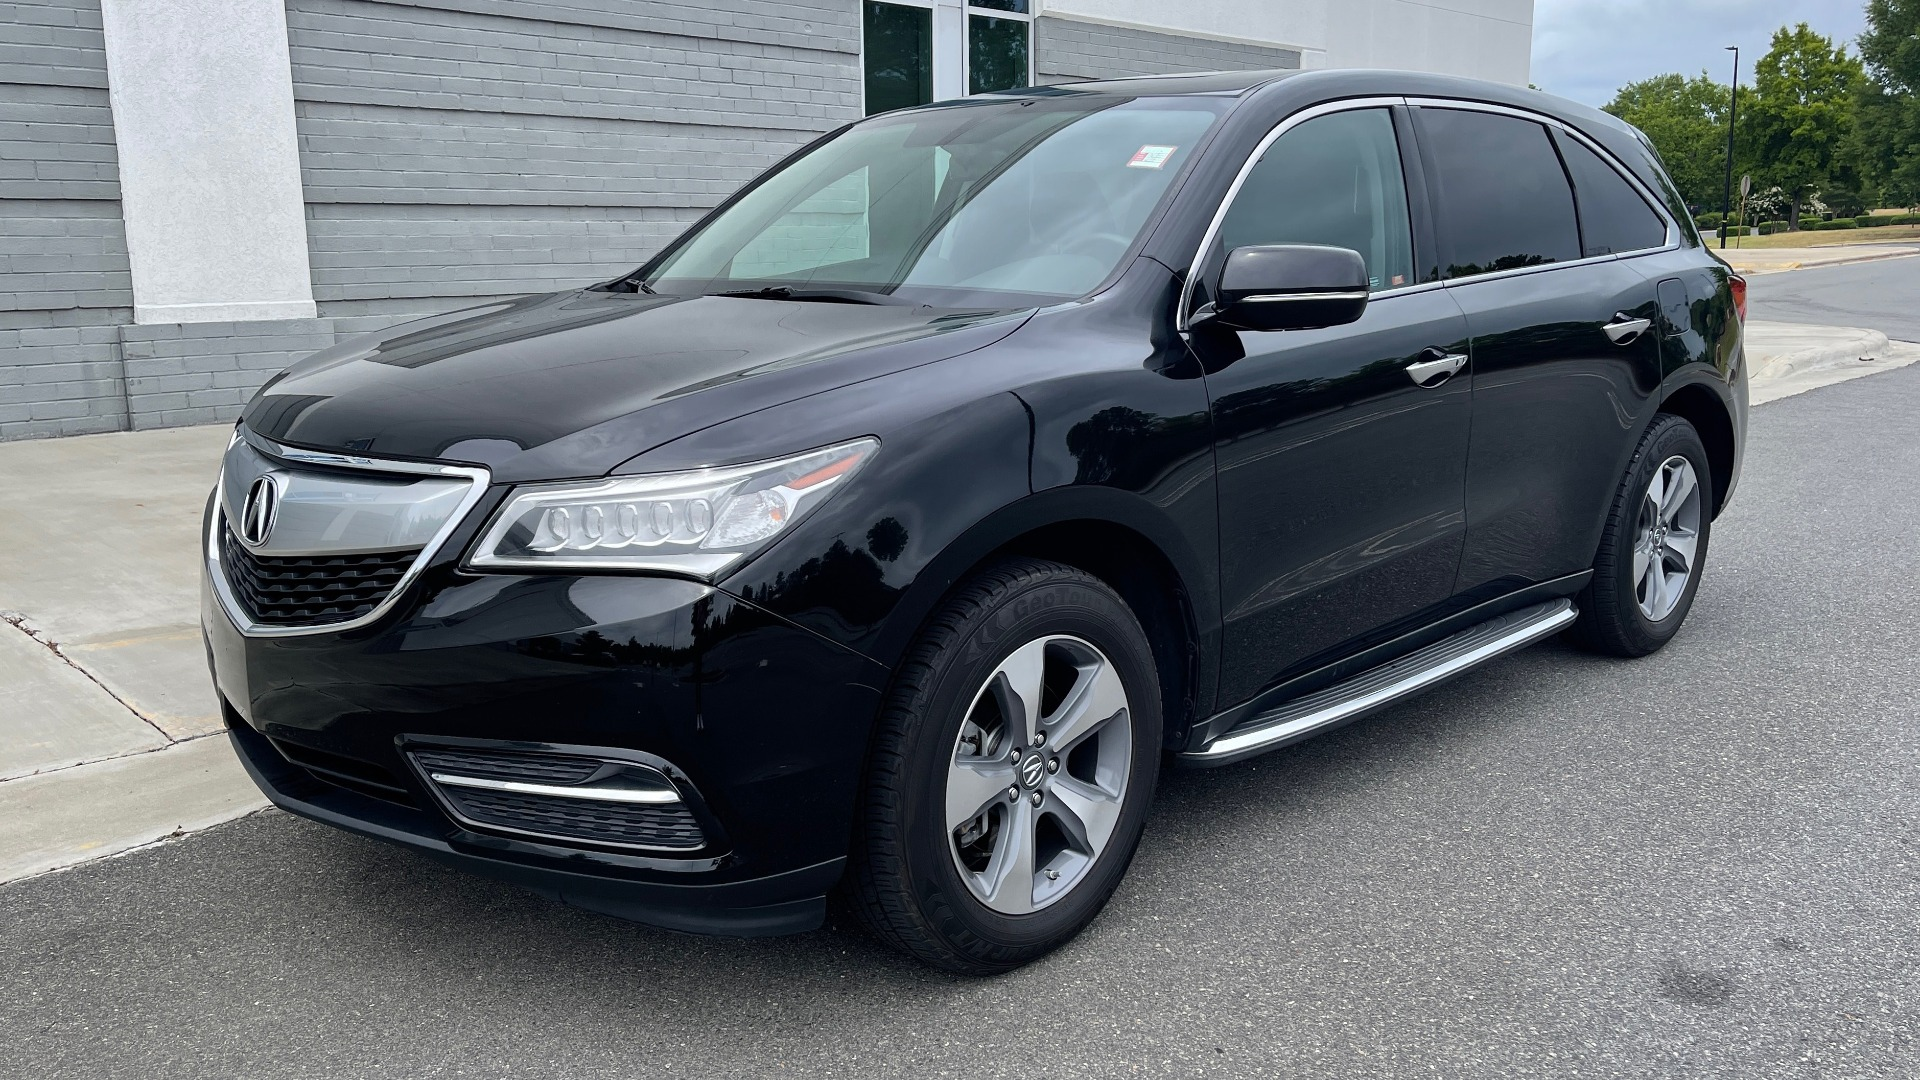 Used 2016 Acura MDX 3.5L V6 / AUTO / LEATHER / NAV / SUNROOF / 3-ROW / REARVIEW for sale $21,900 at Formula Imports in Charlotte NC 28227 3